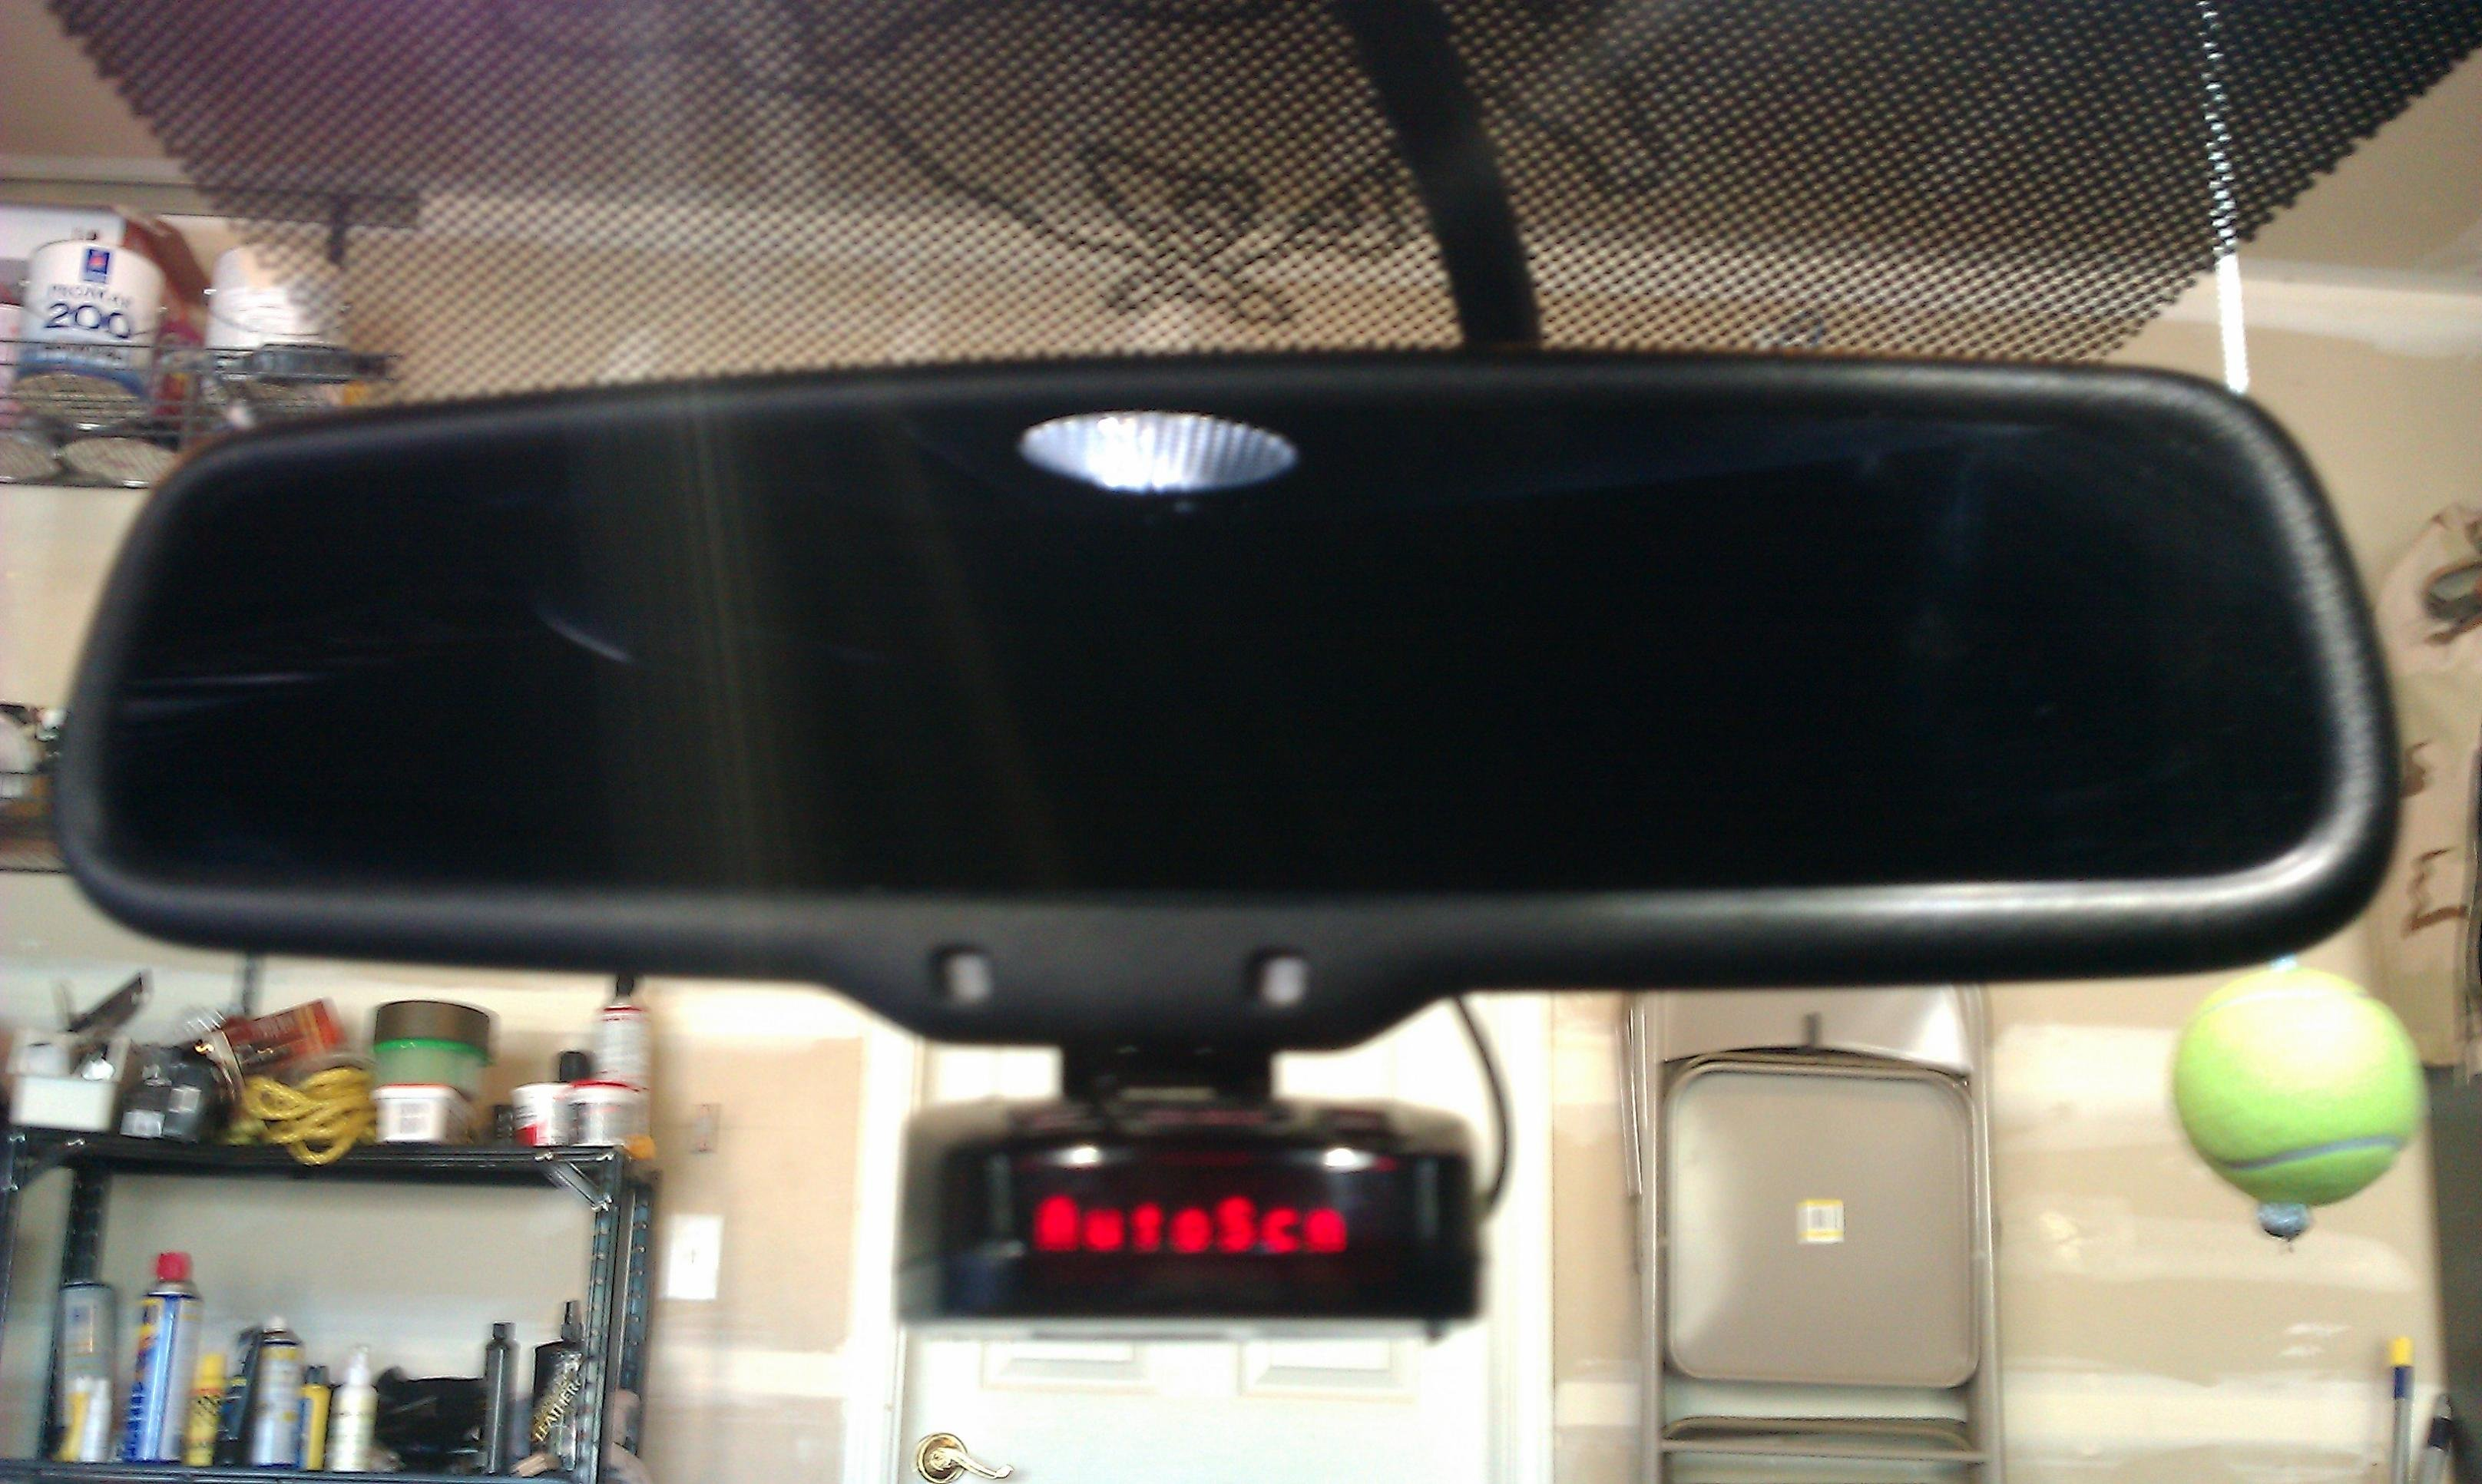 159501d1341689454 installed rogue mount rear view mirror imag0171 installed rogue mount on rear view mirror ford mustang forum  at webbmarketing.co